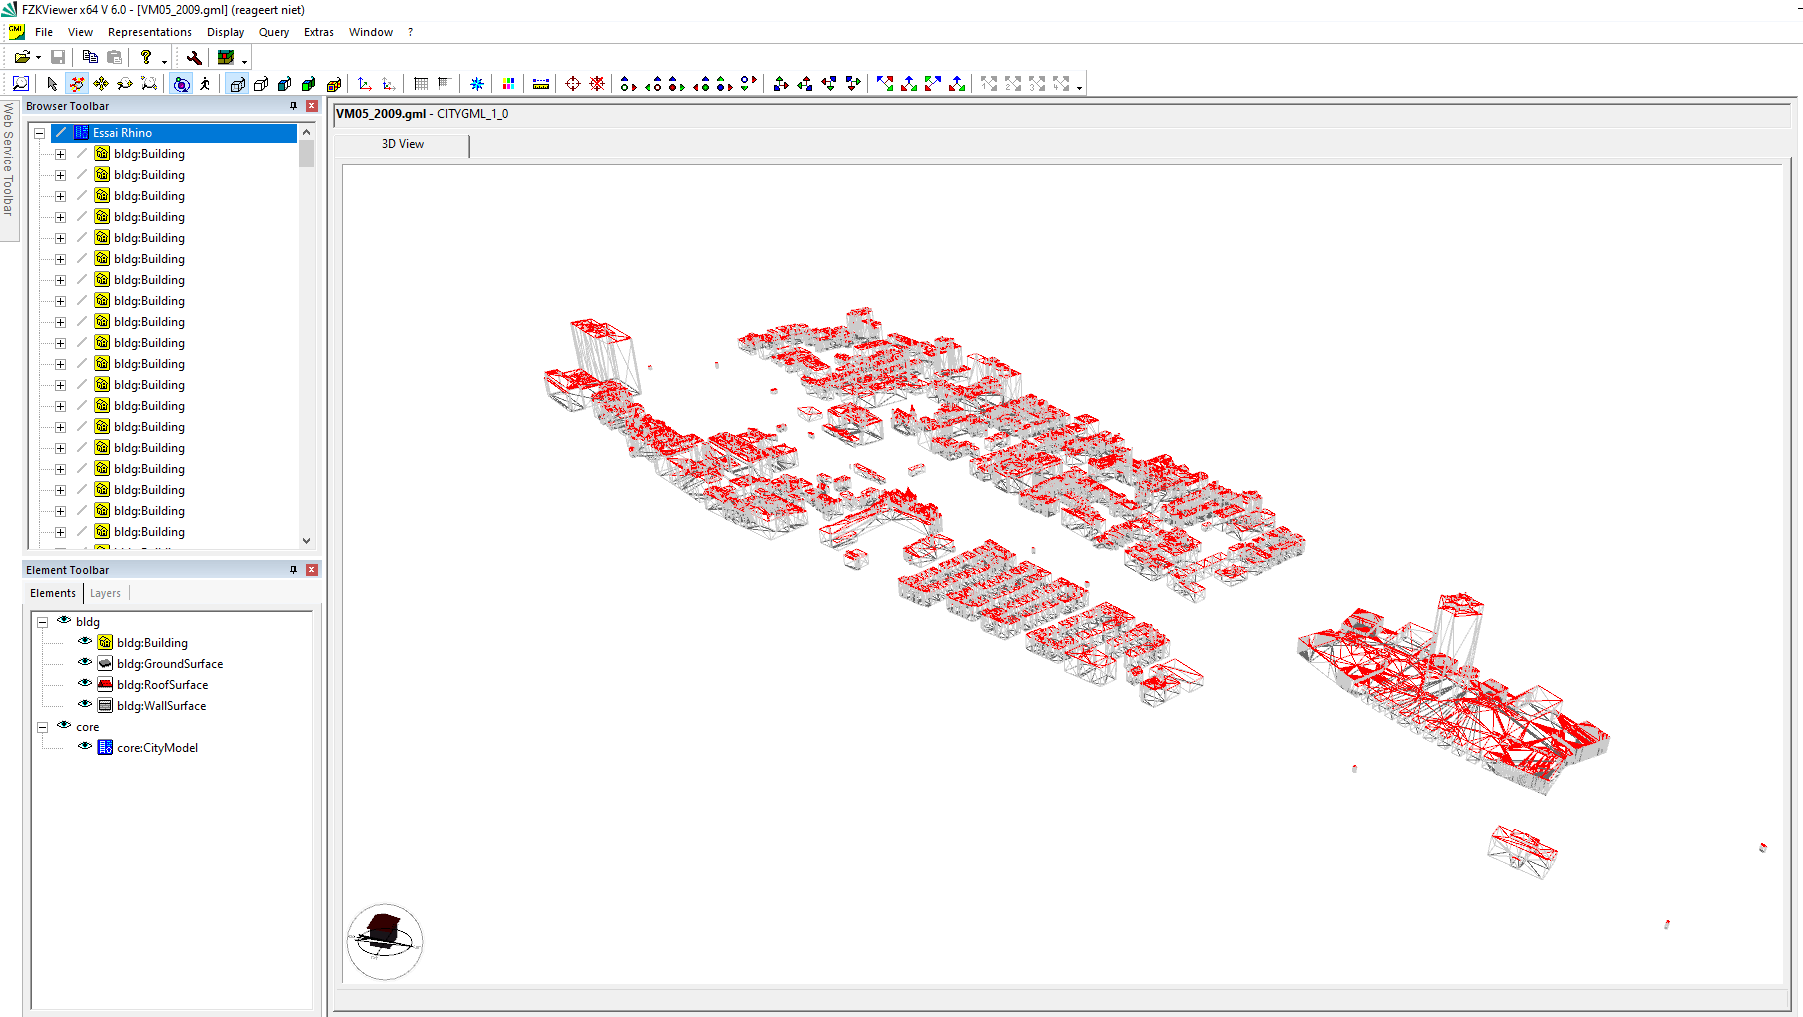 3d city building model gis data